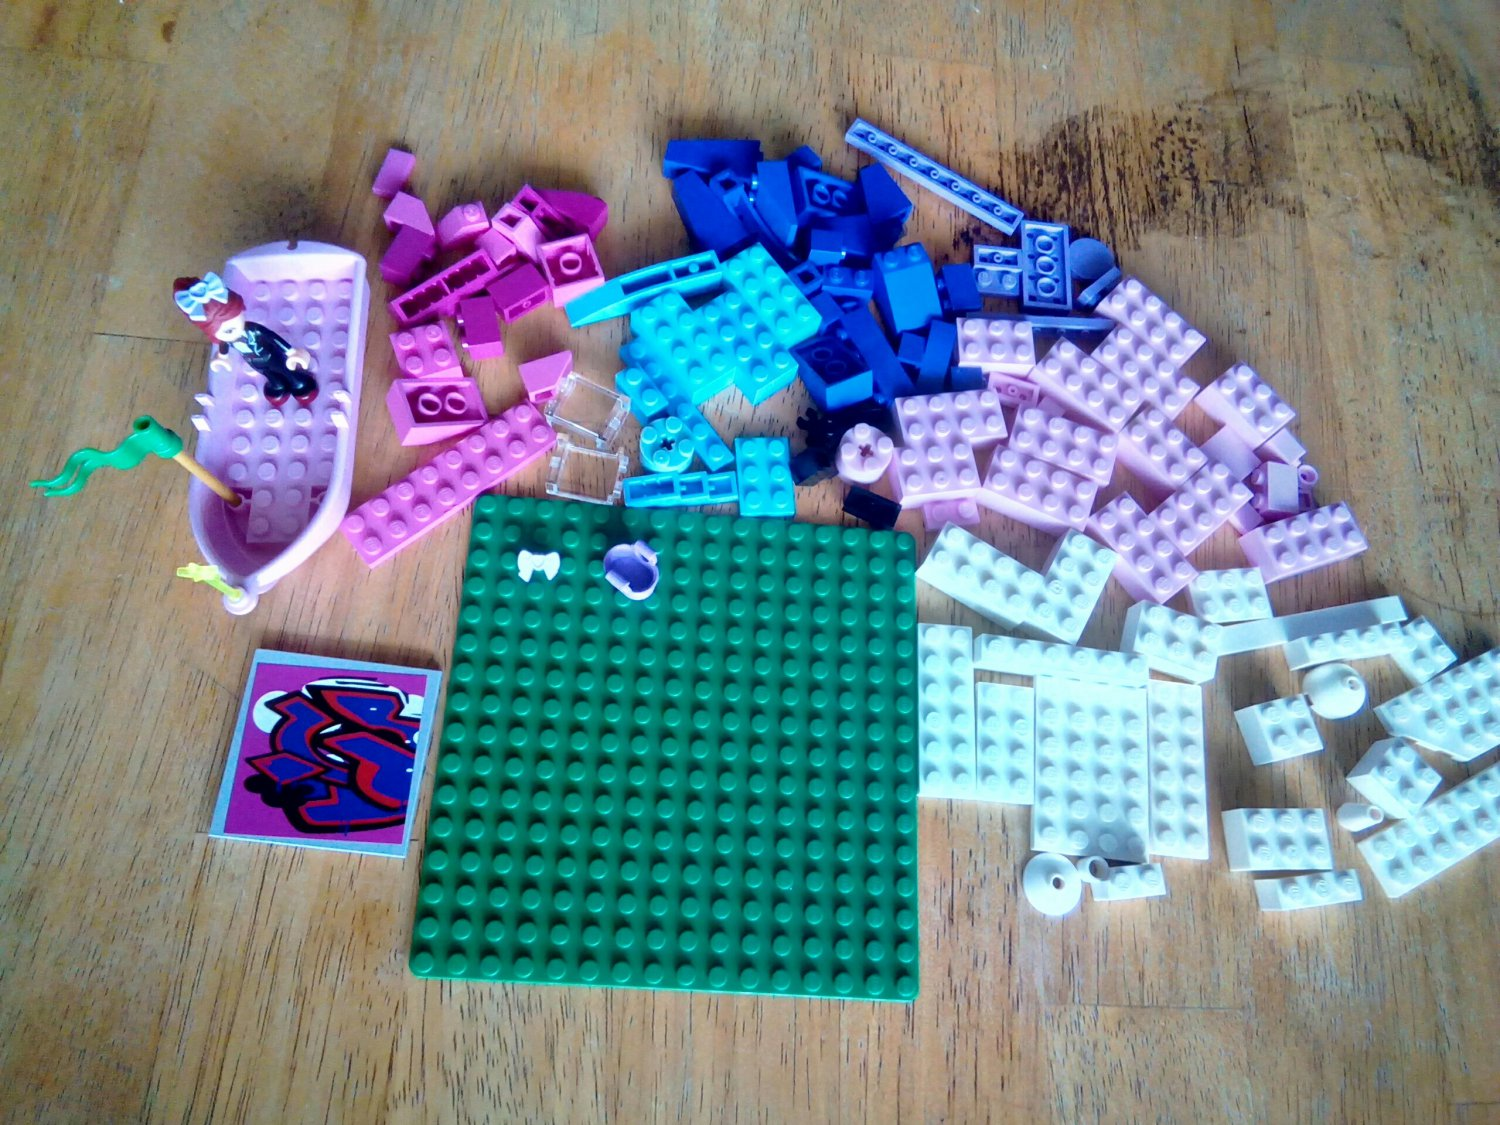 Lego 100 pc Set for Girls